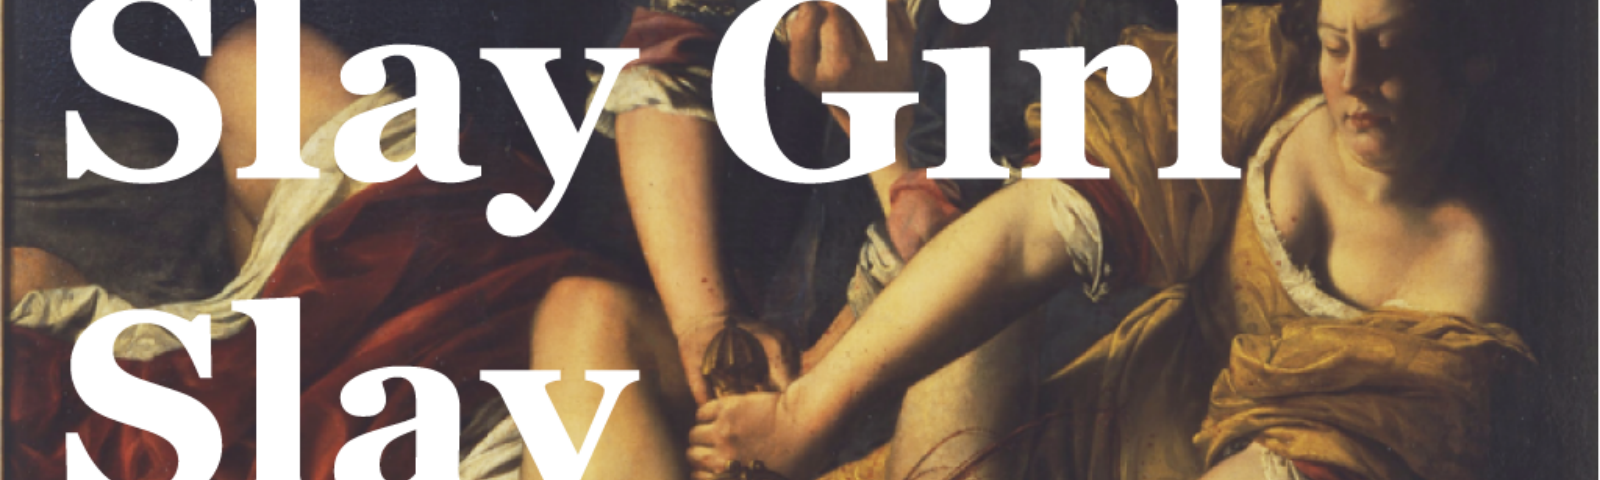 Slay Girl, Slay: Thoughts On My Favorite Art Piece by